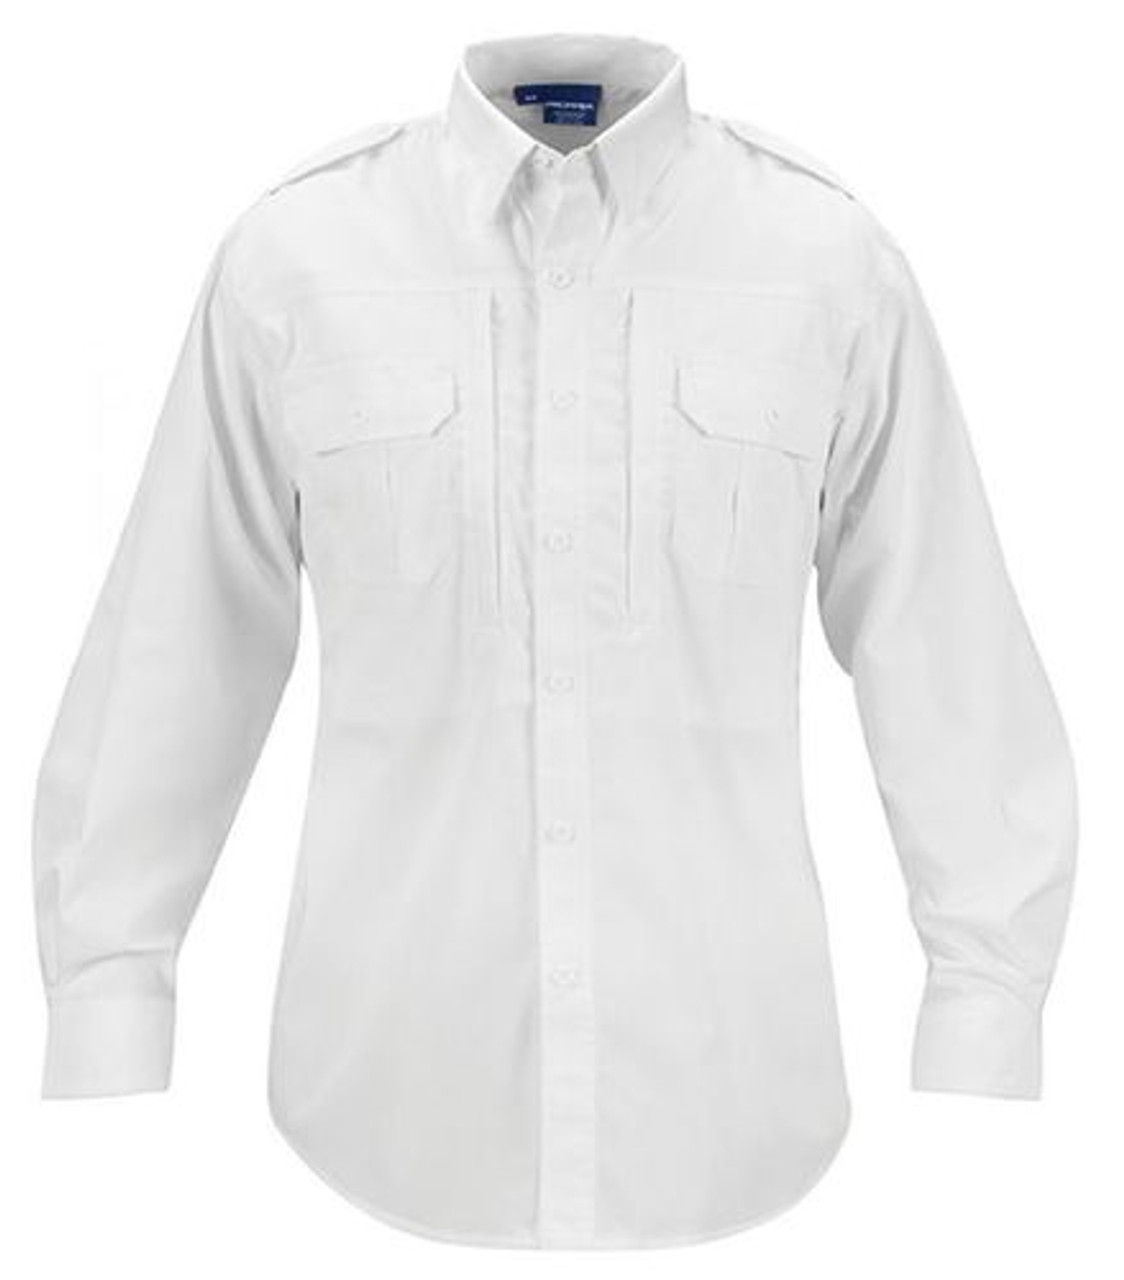 Propper® F53121M100 Men's White Tactical Button-Down Shirt, Long Sleeve, Casual or Uniform, Polyester/Cotton, 2 Chest Pockets, Badge Tab, Shoulder Epaulette